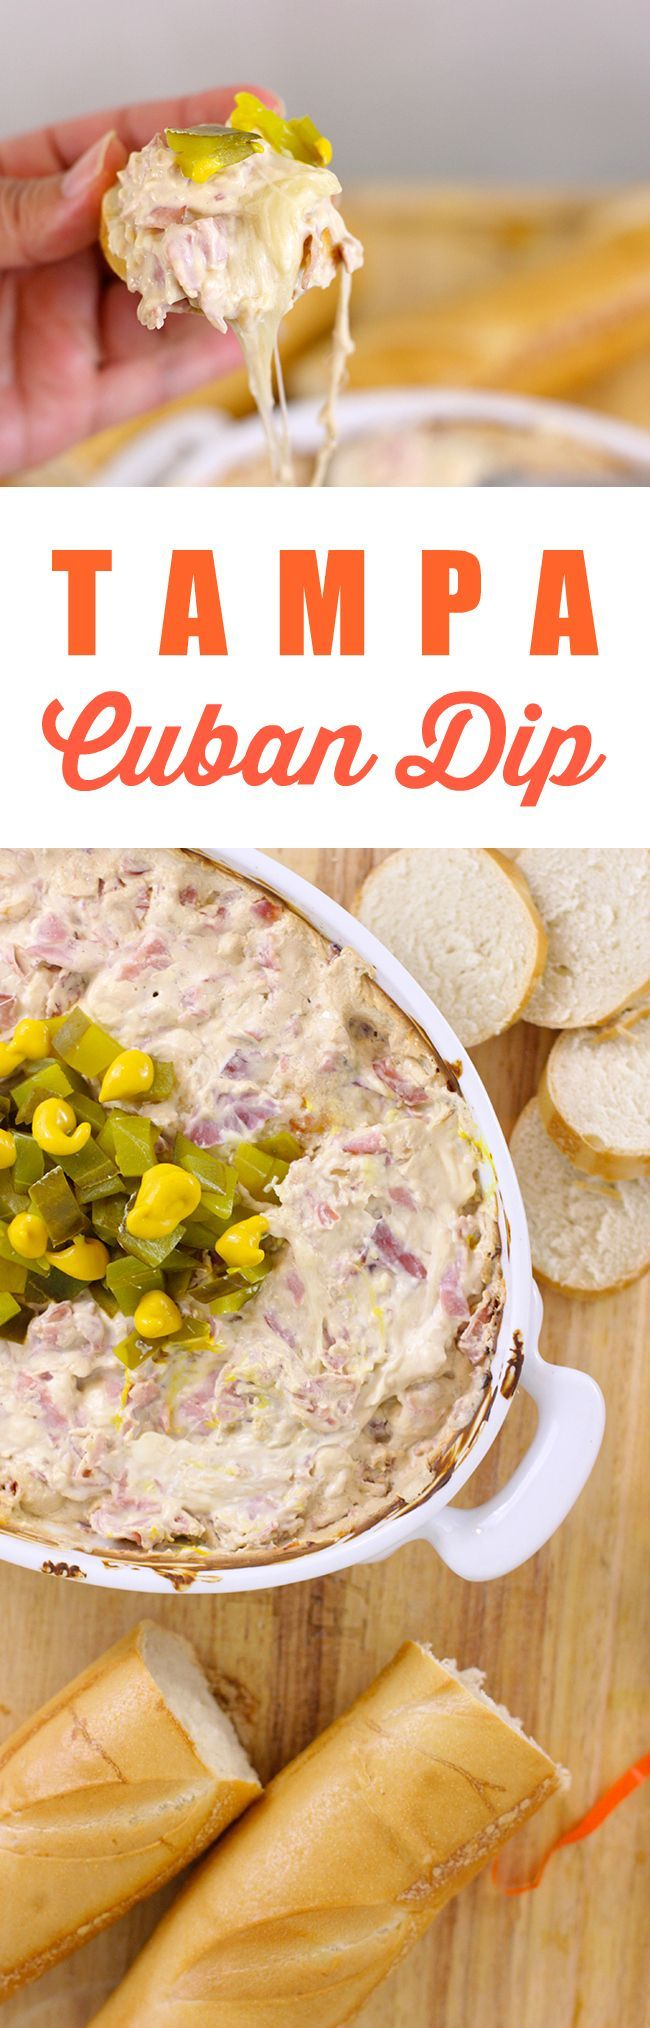 Get your game on with this Tampa Cuban Dip. Easy and drool worthy!  #gametimedips  AD